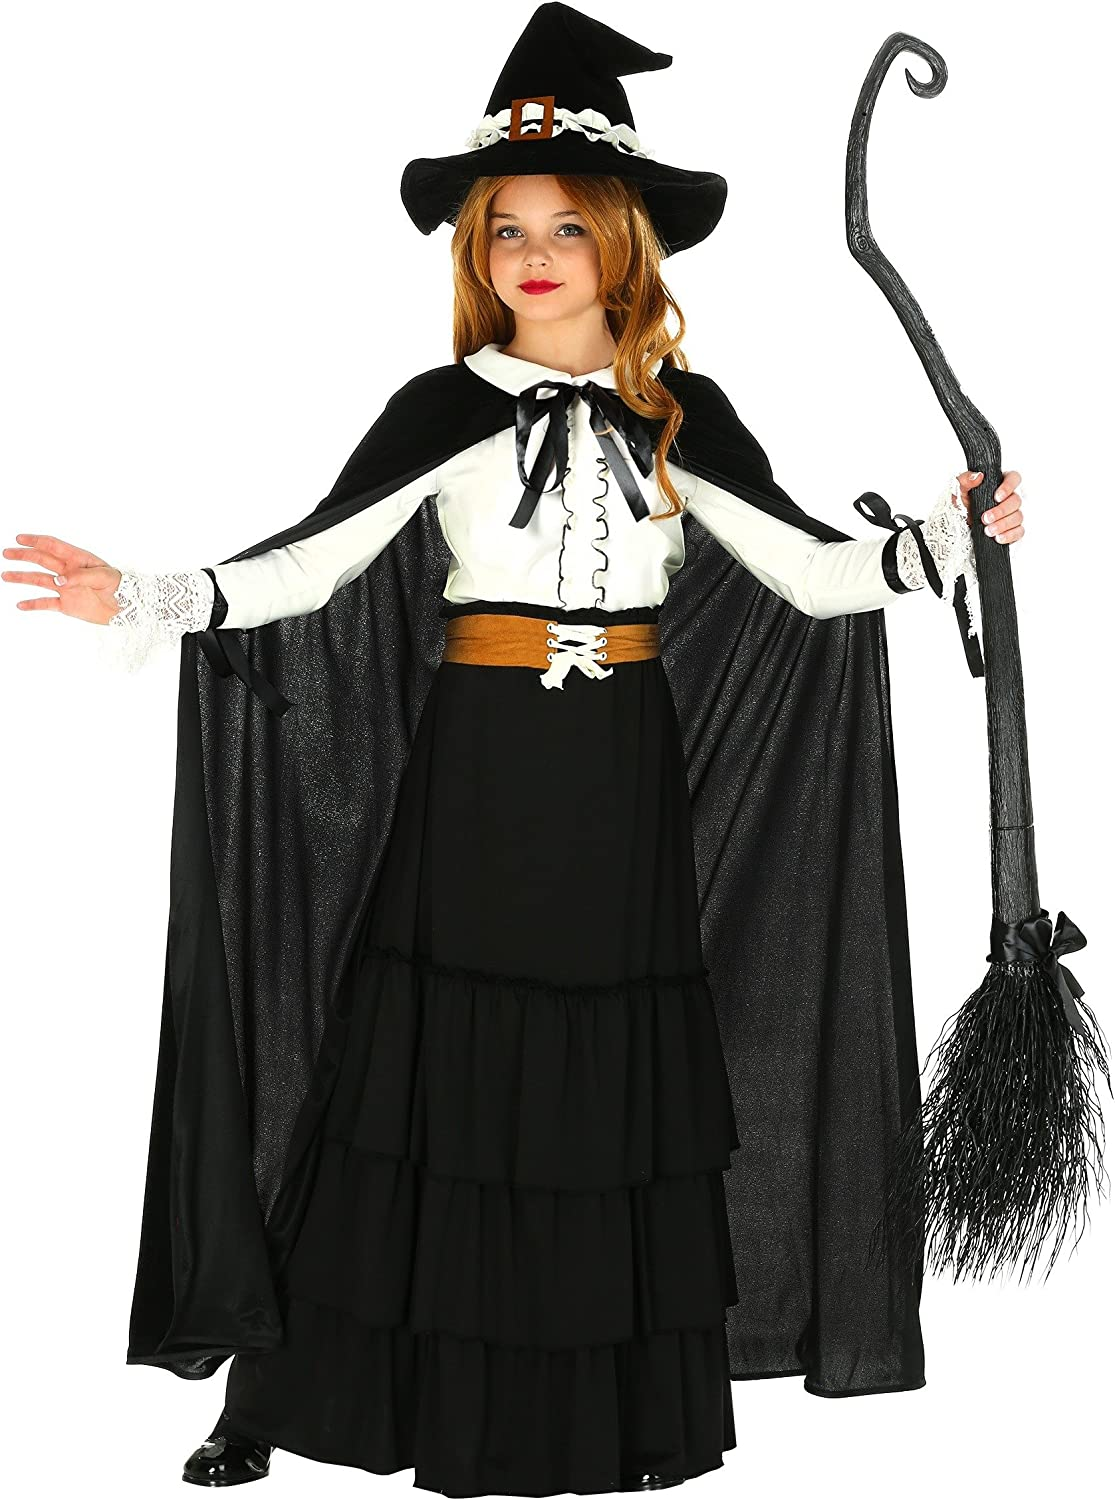 Amazon Com Kid S Salem Witch Costume Colonial Witch Costume For Girls Clothing